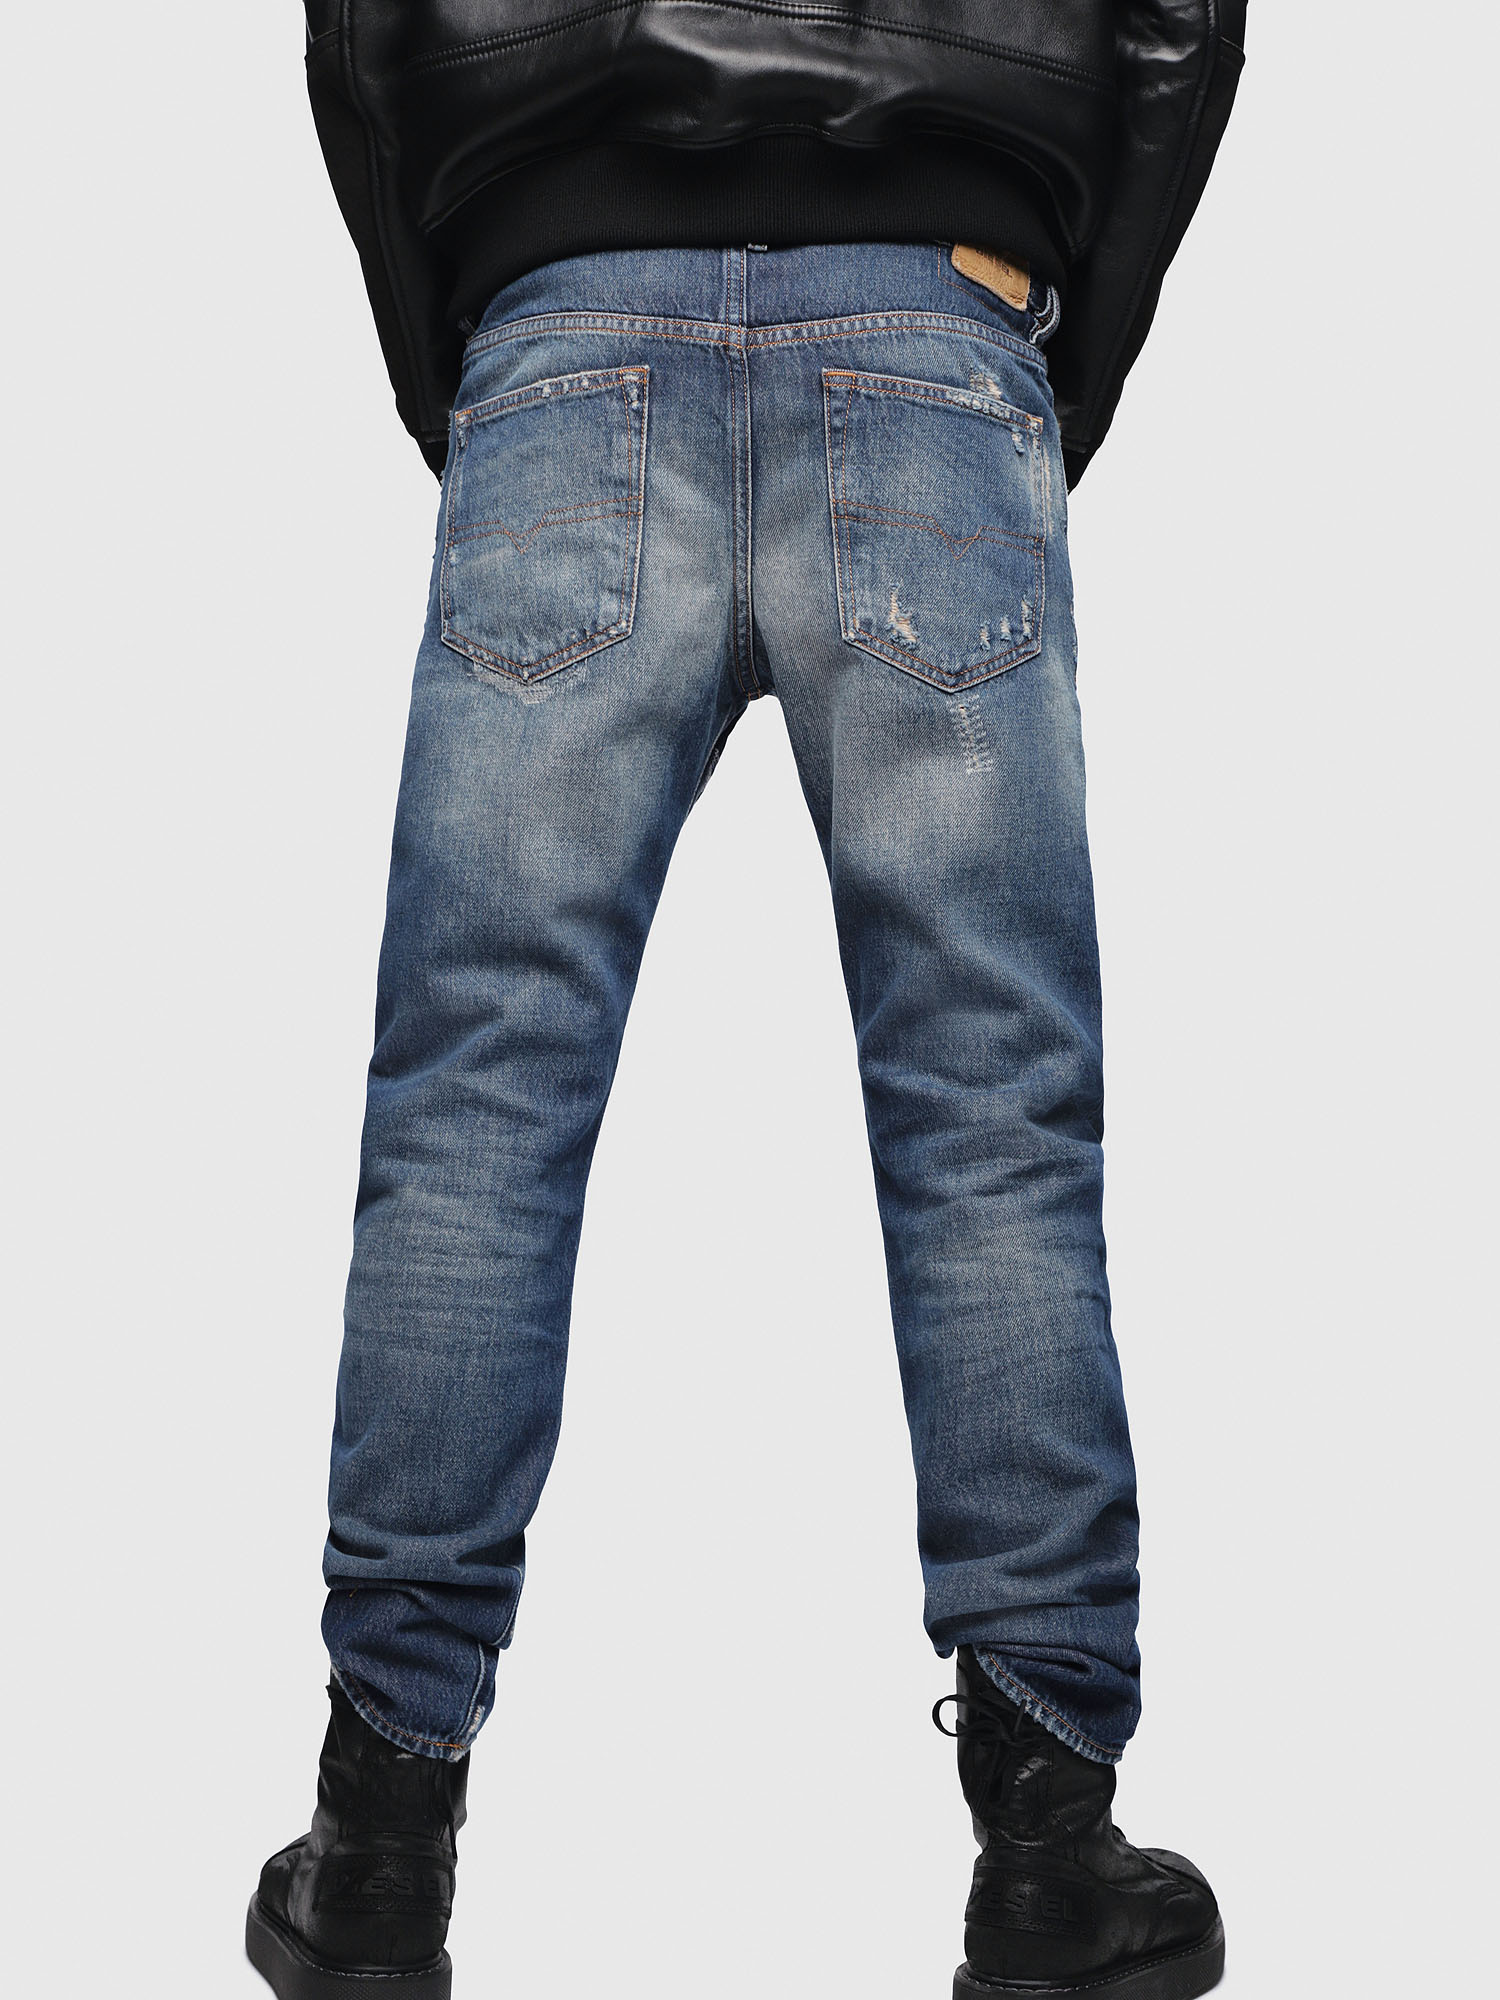 Diesel - Buster 088AQ,  - Jeans - Image 2